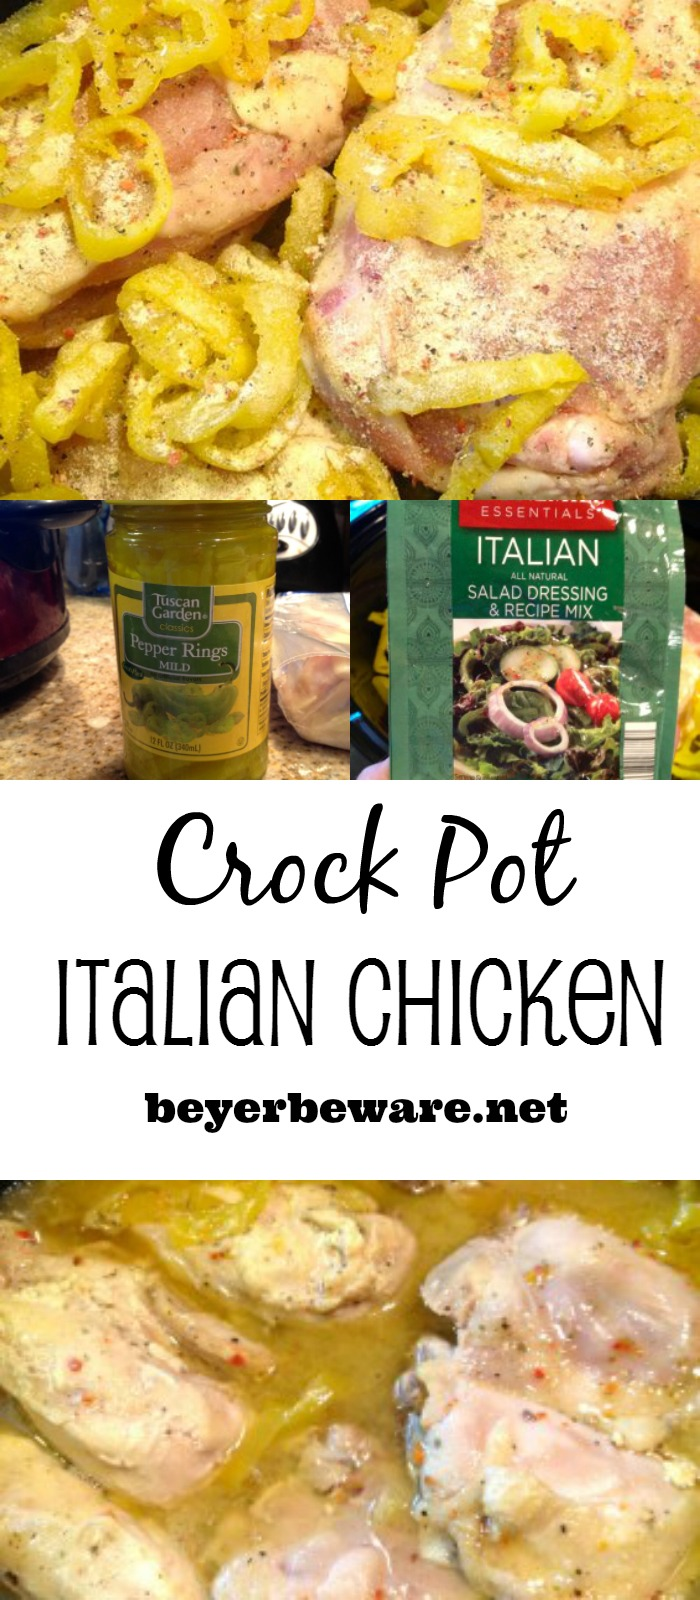 A simple crock pot Italian chicken recipe with three ingredients that is full of flavor and cooks all day in the crock pot.